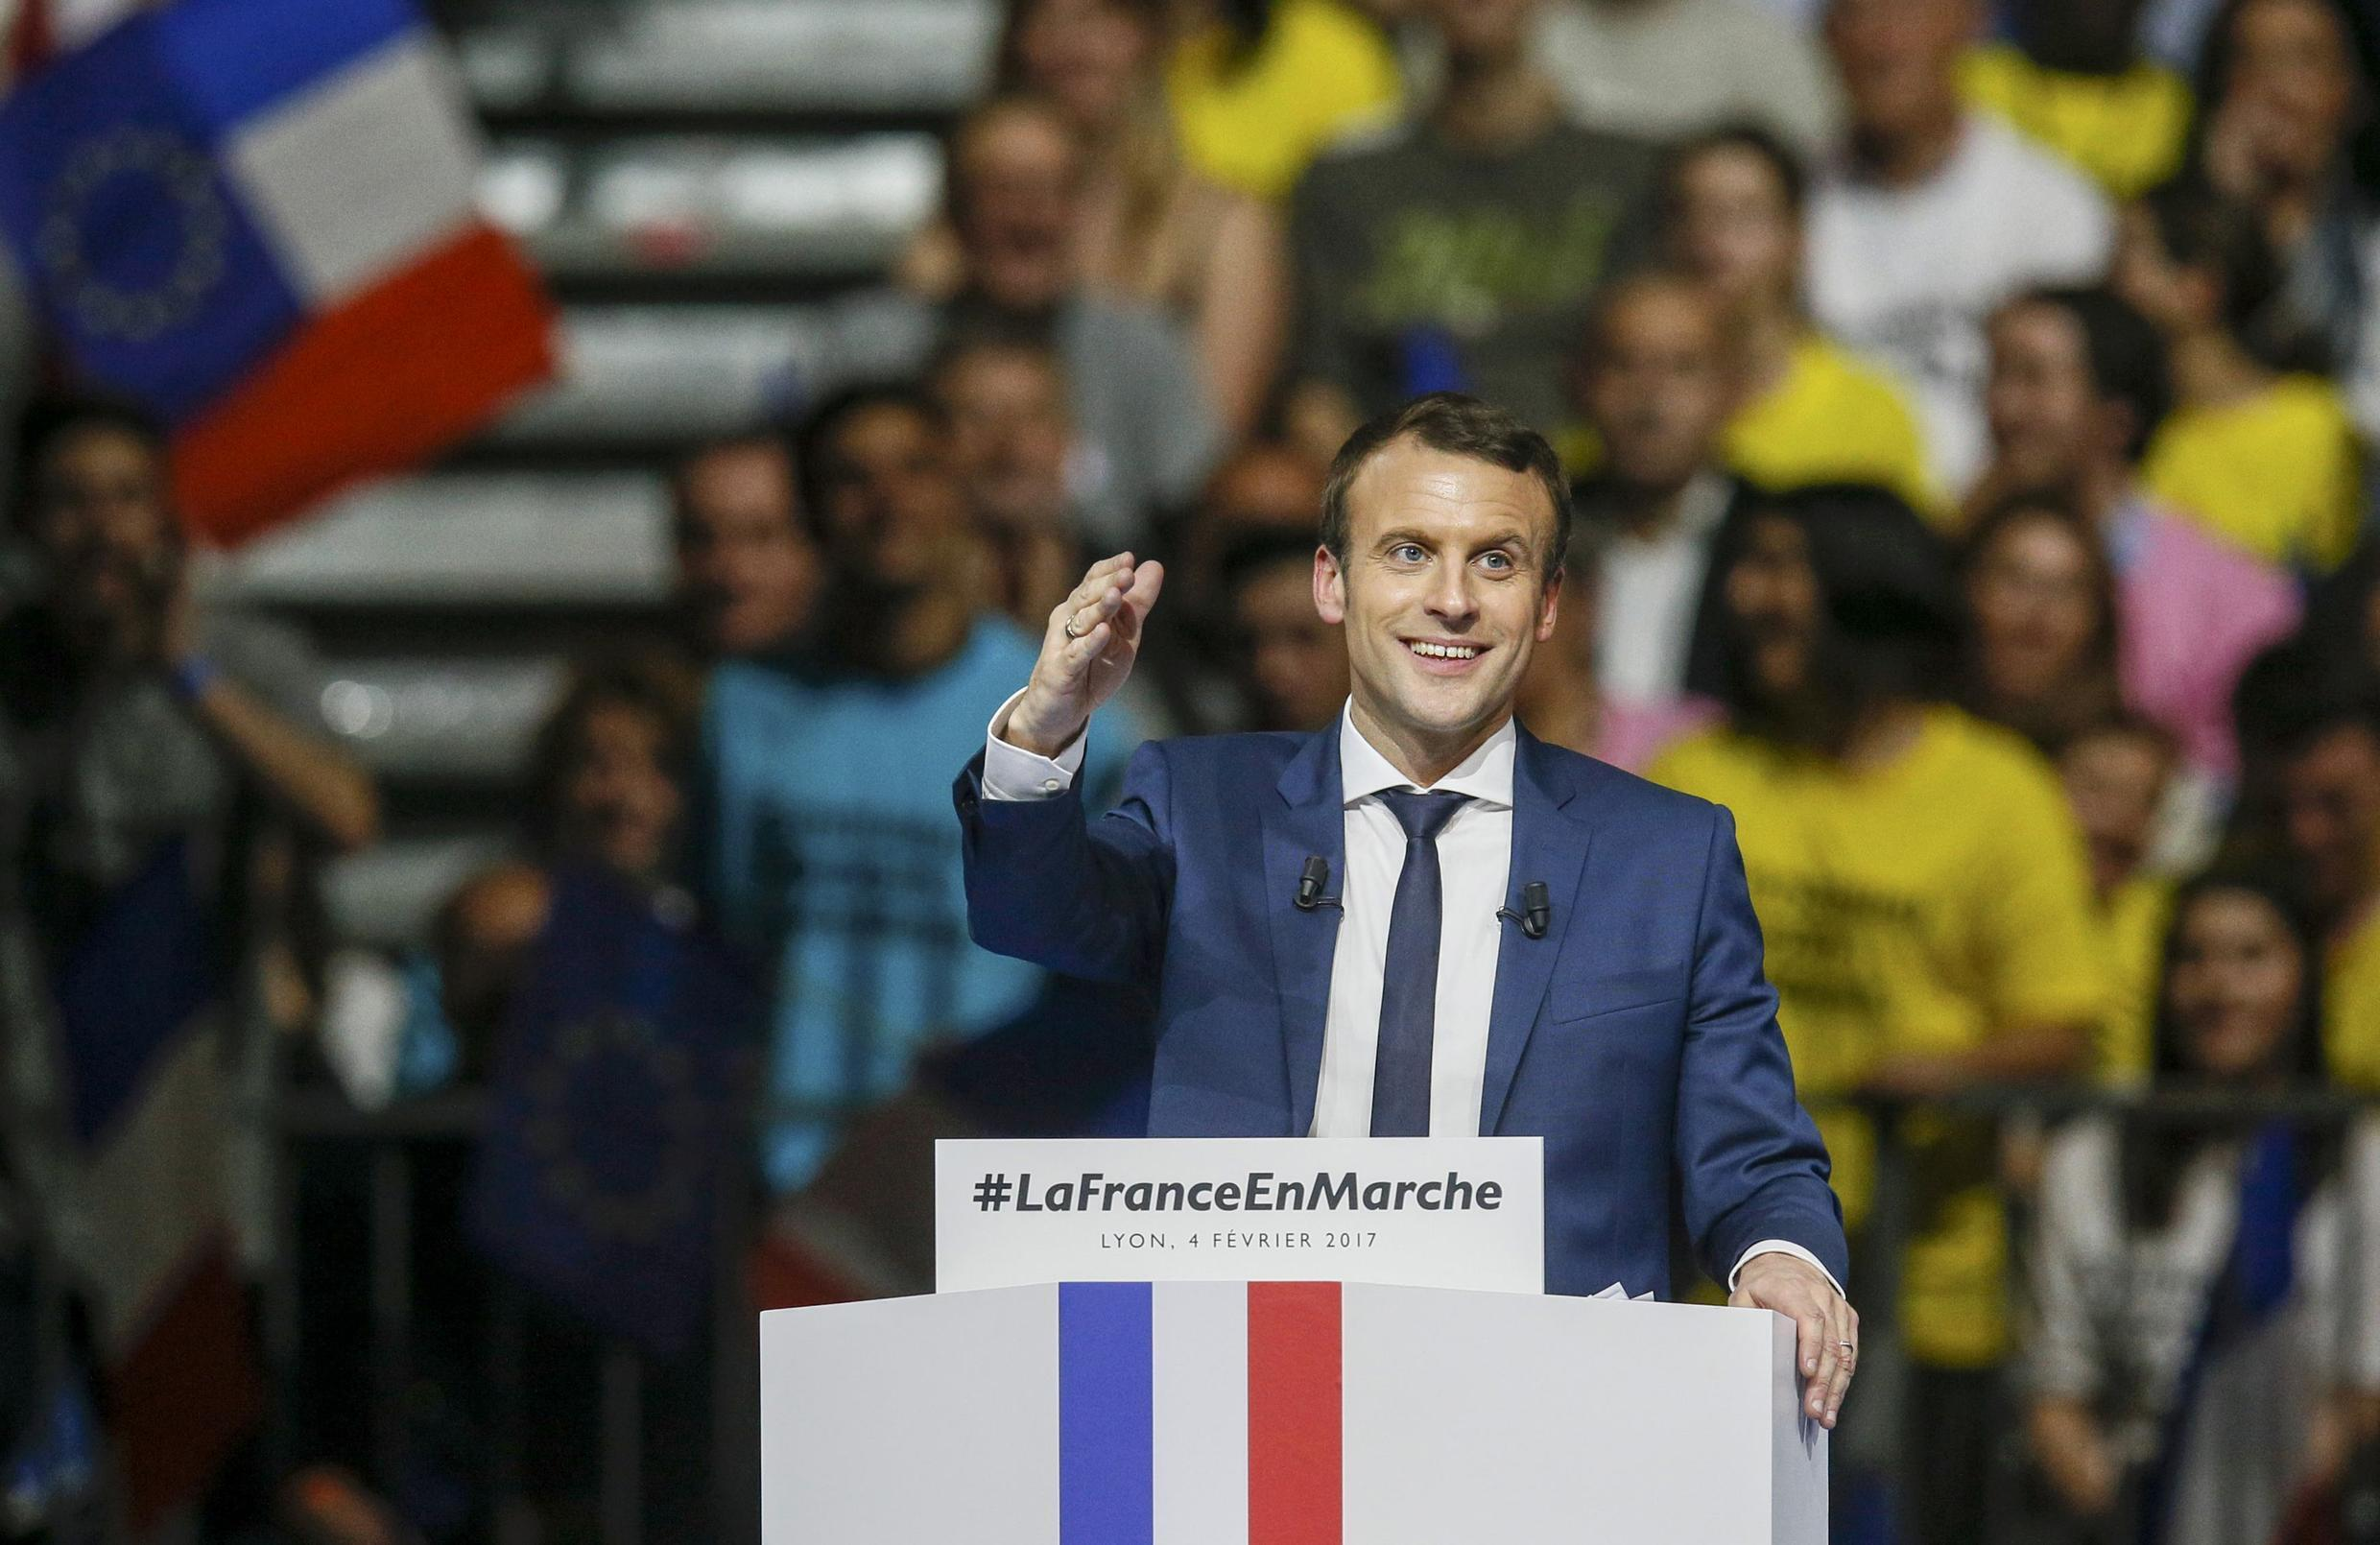 Emmanuel Macron, head of the political movement En Marche !, or Onwards !, and candidate for the 2017 presidential election, attends a campaign rally in Lyon, France, February 4, 2017